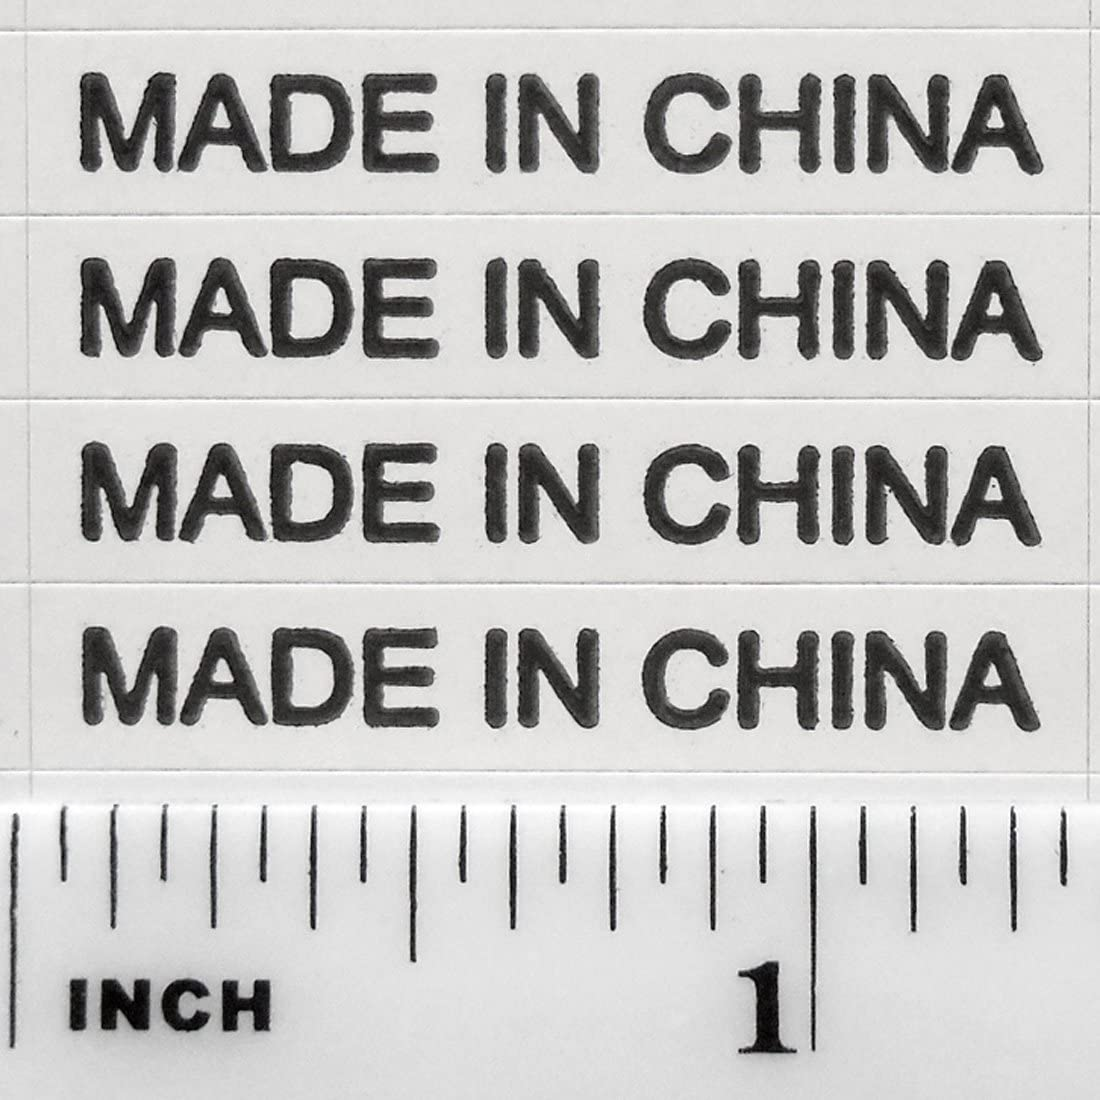 zhoushengmeizhuang Labels Stickers White Waterproof Self Adhesive Write On Roll Labelling Stickers for Jars Bottles 1000 Pieces 80 x 30mm